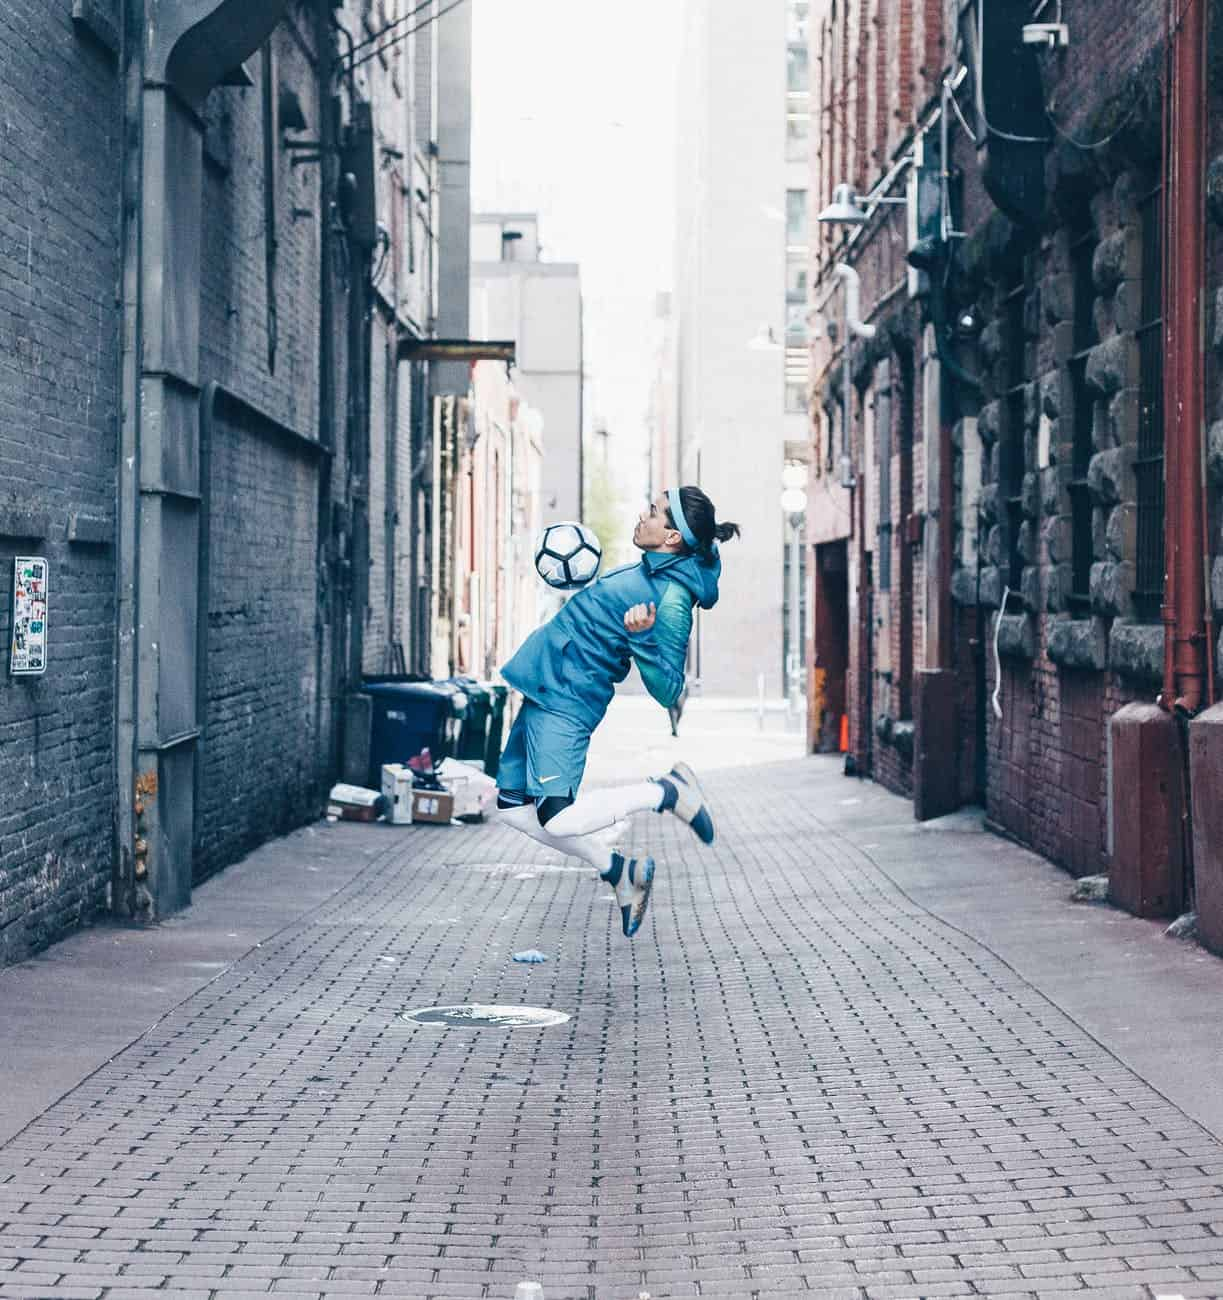 male football player jumping with ball in city